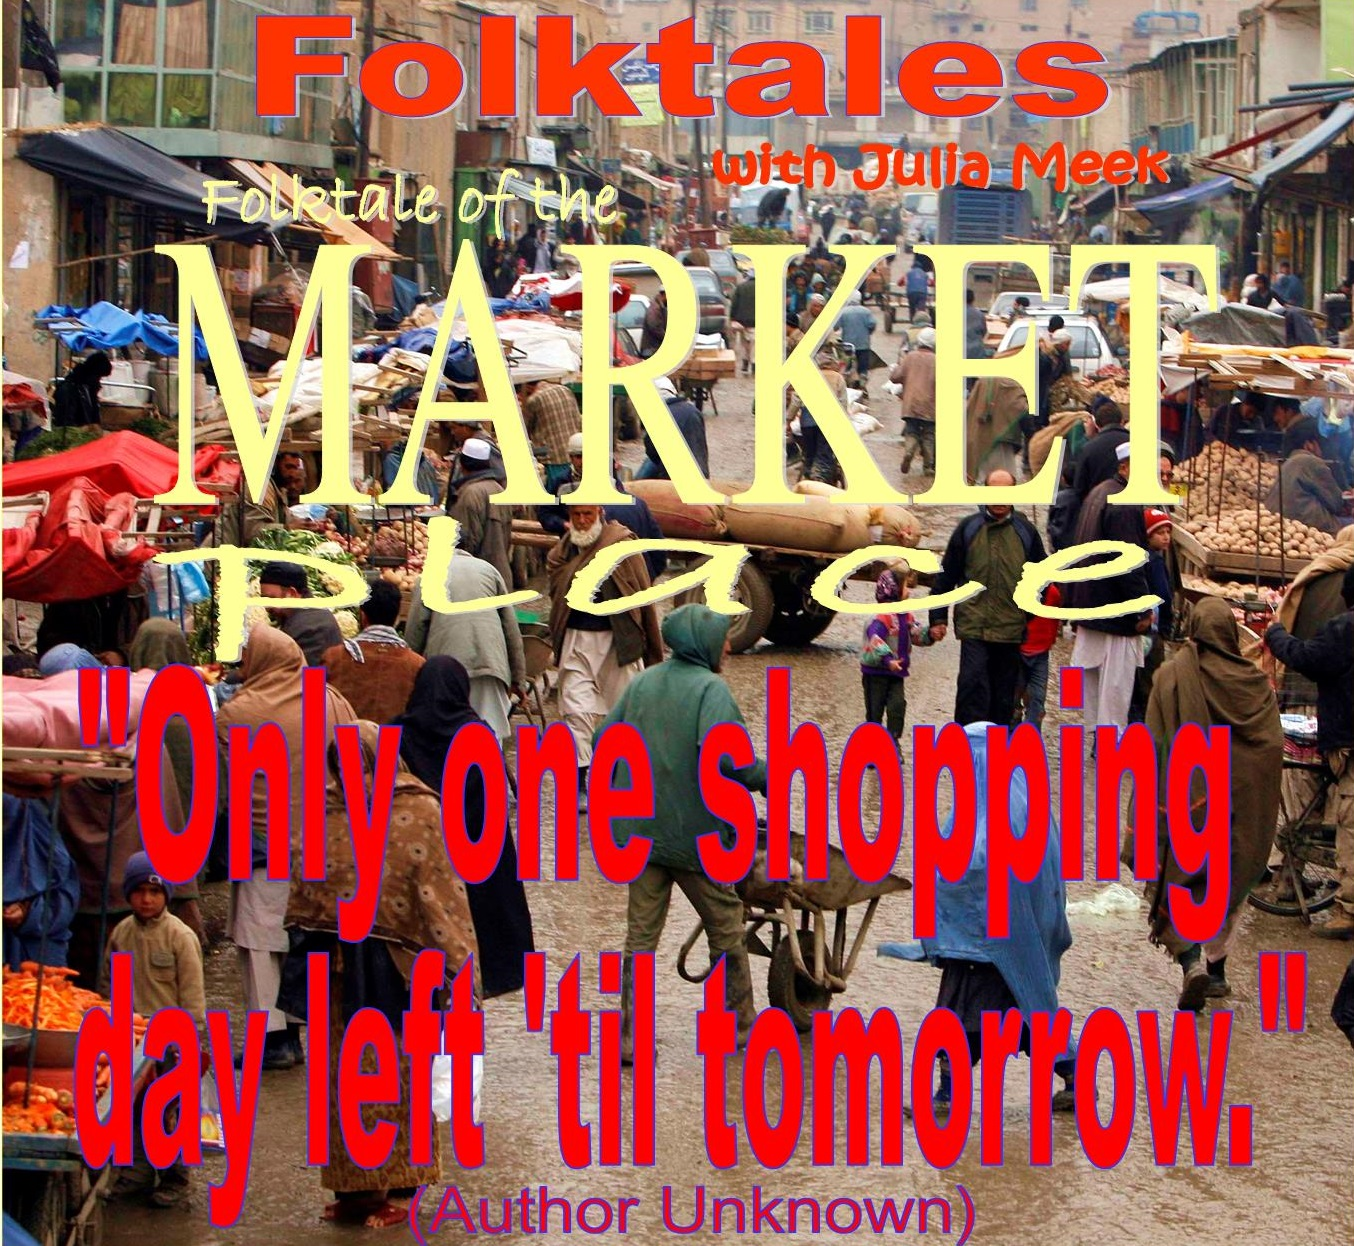 Caption: WBOI's Folktale of the Market Place, Credit: Julia Meek